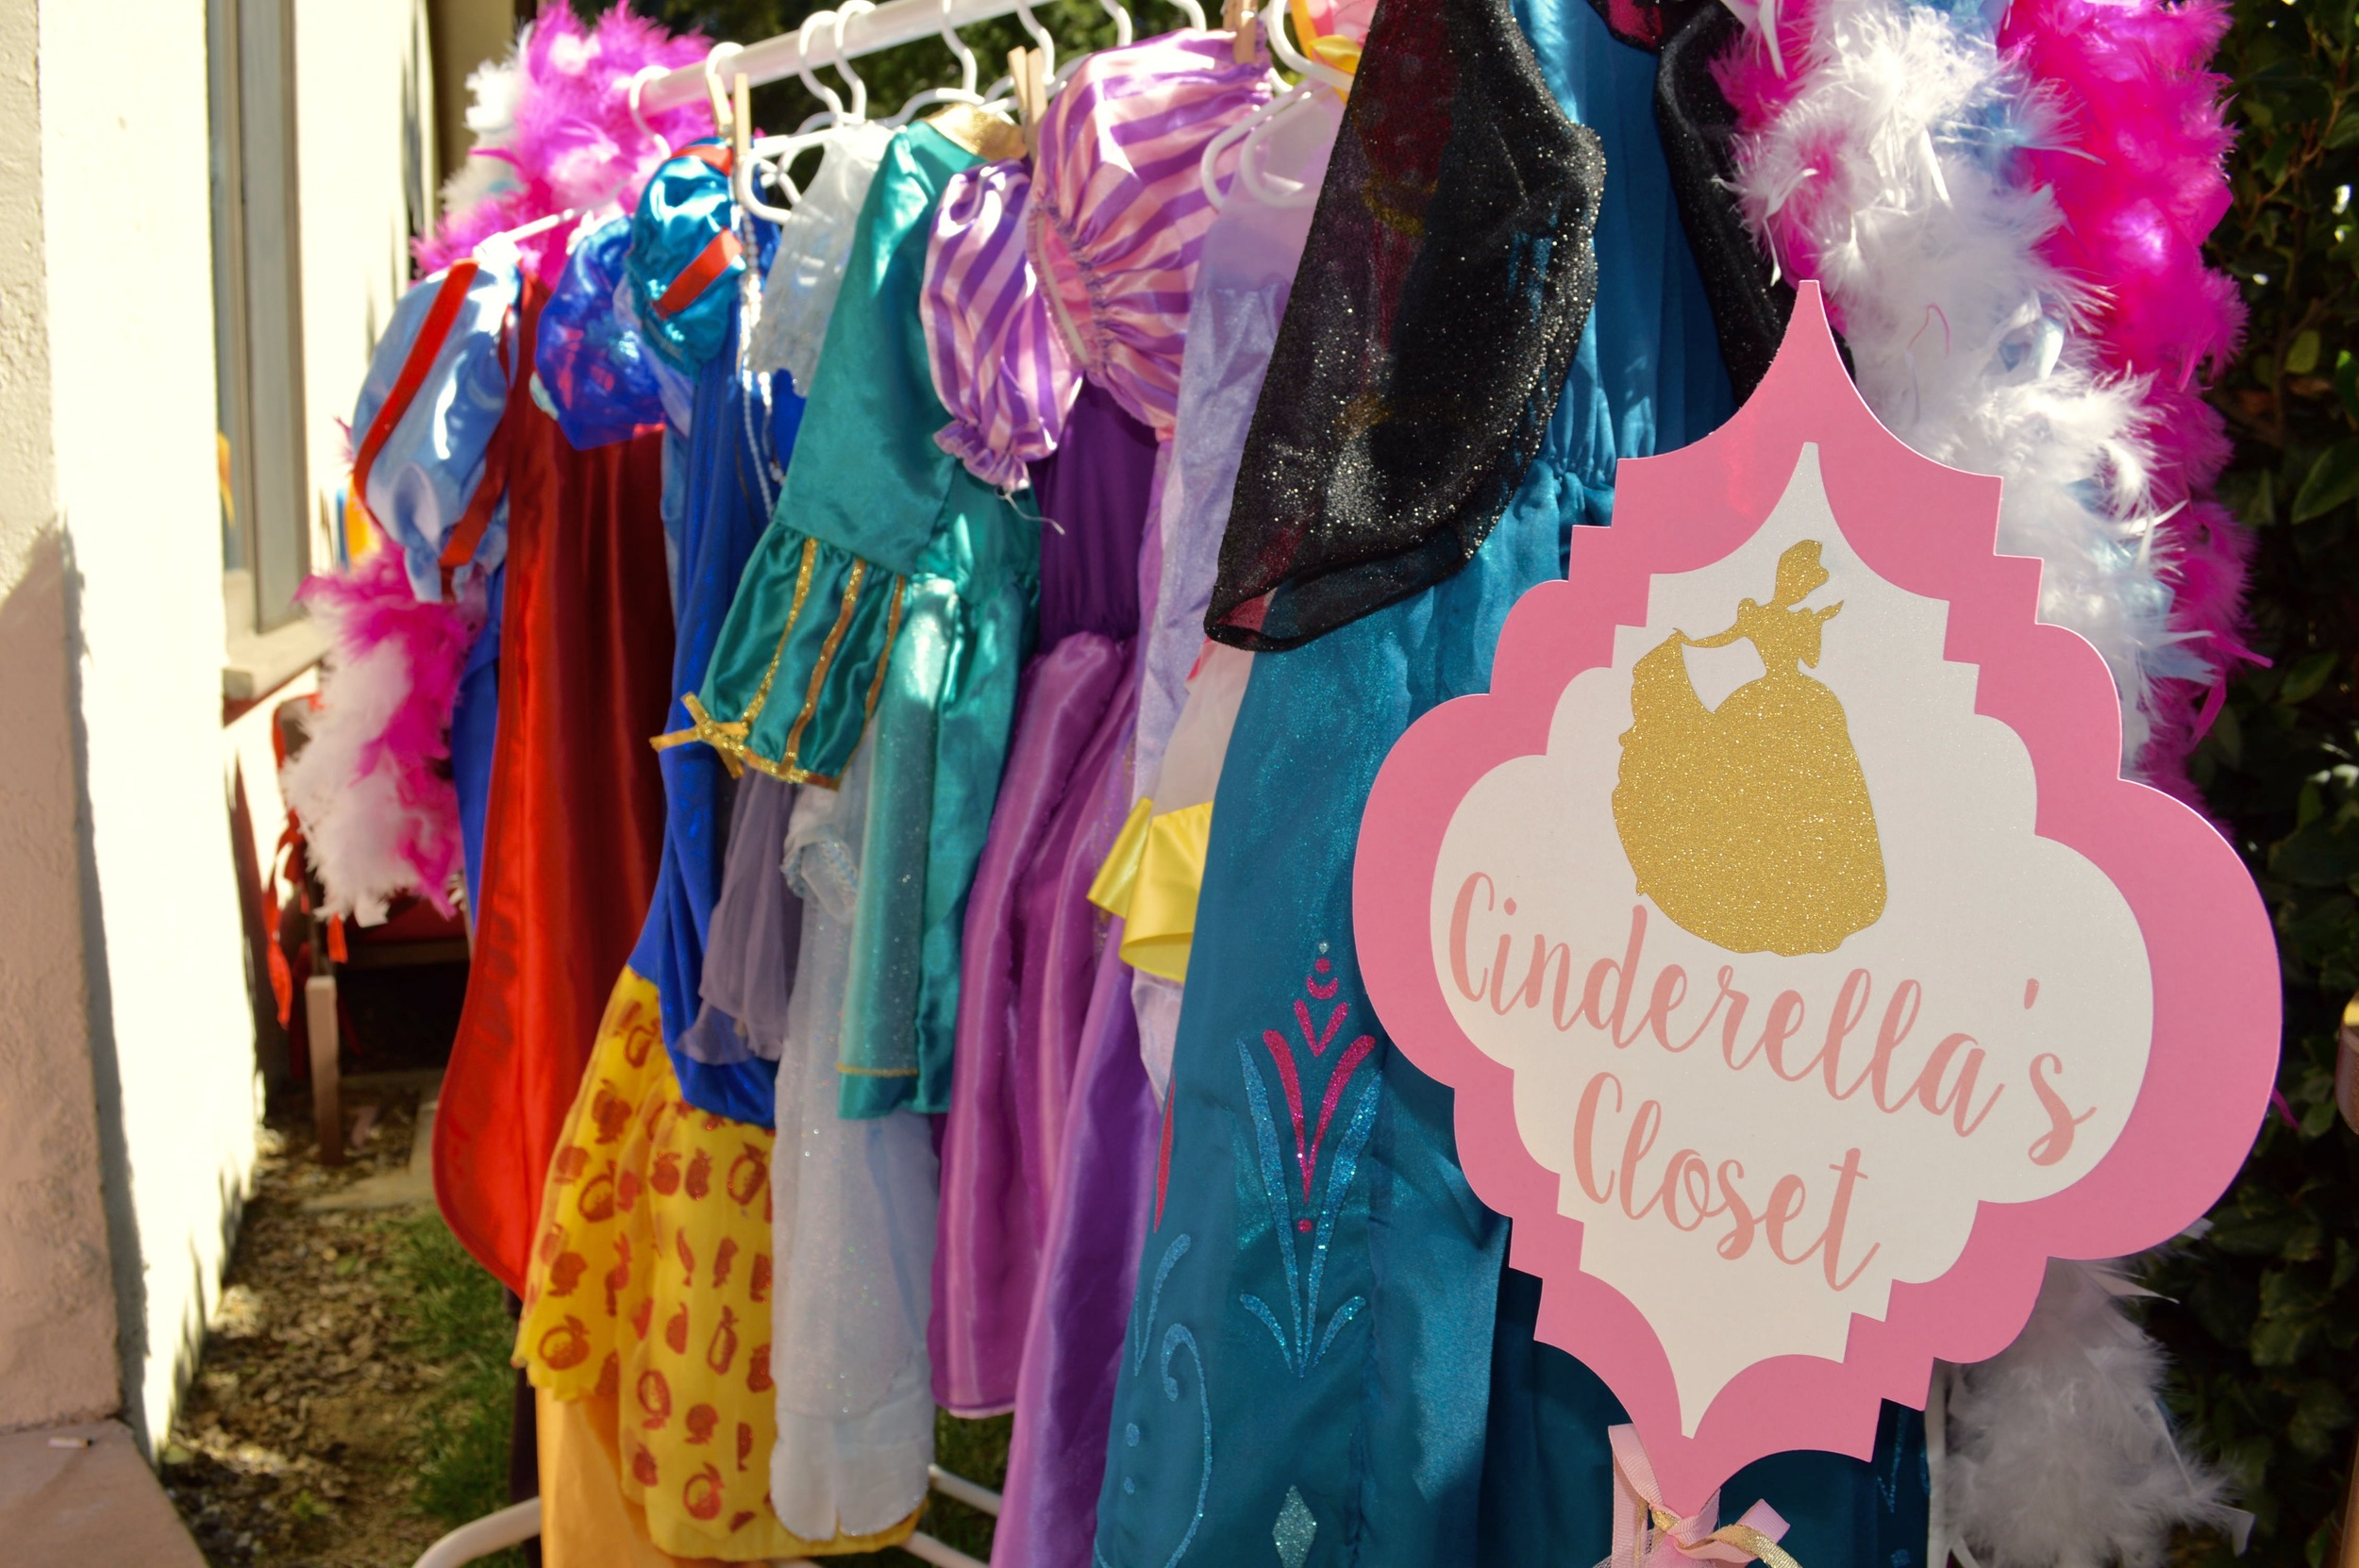 Cinderella's Closet Dress Up Station - available to rent from Down Emery Lane.